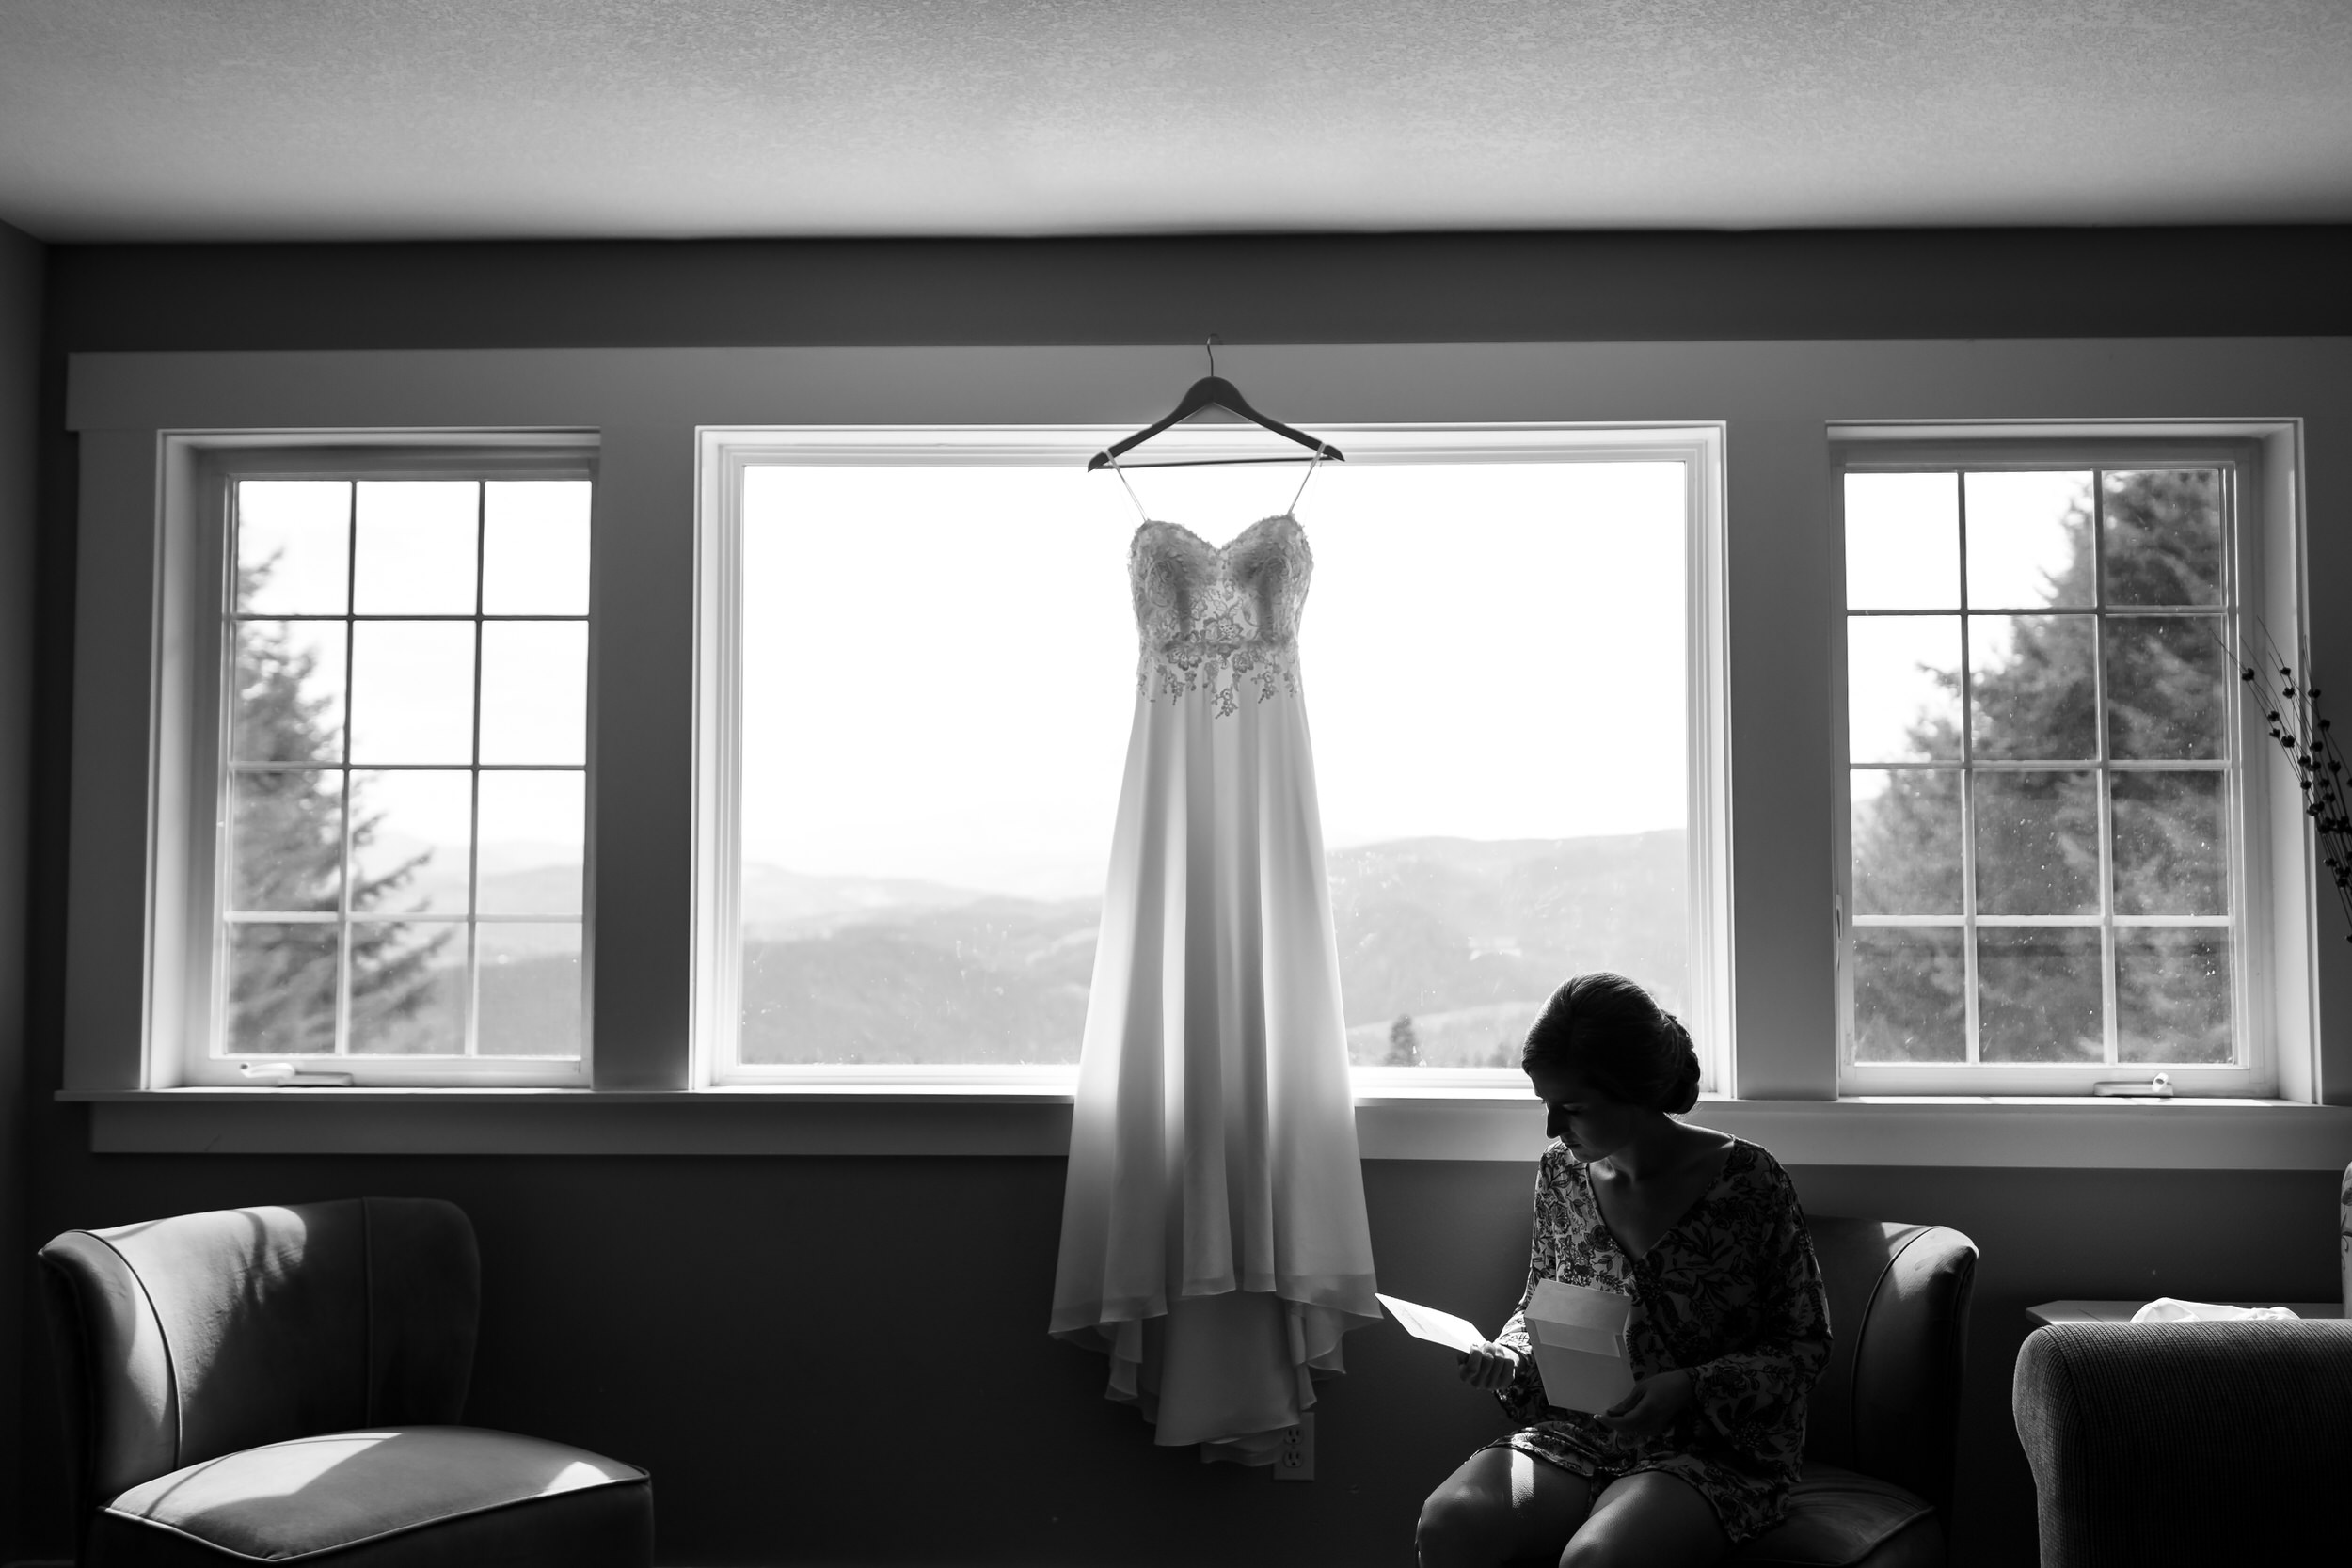 Gorge_Crest_Vineyards_Wedding_Stark_Photography_015